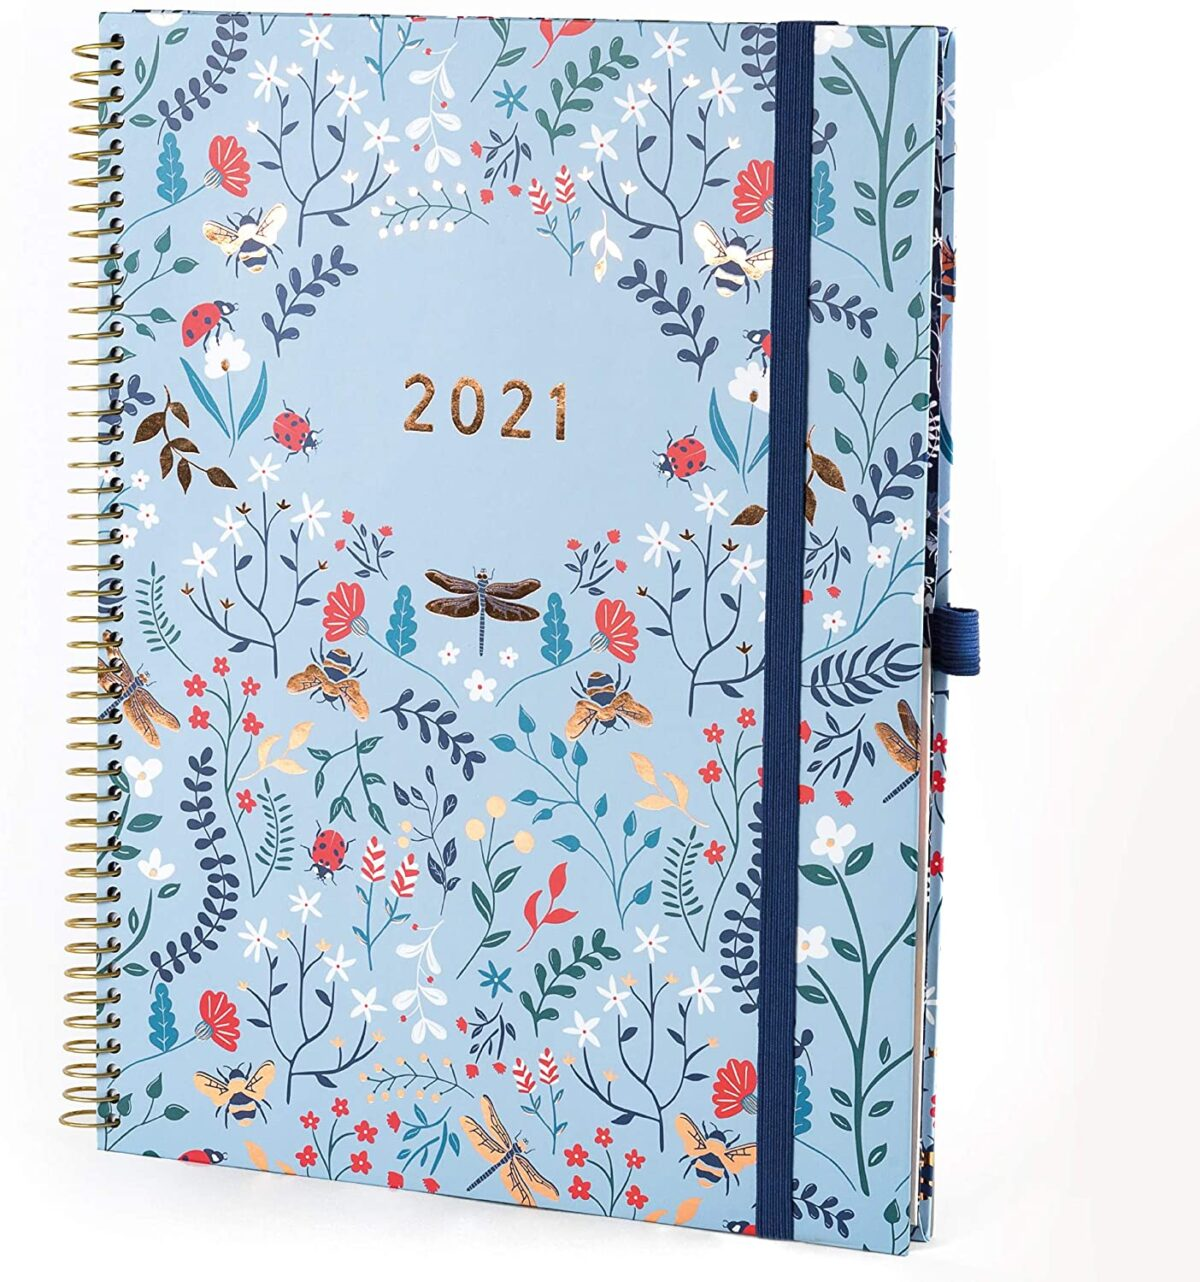 Planners Make Goal Setting Simple